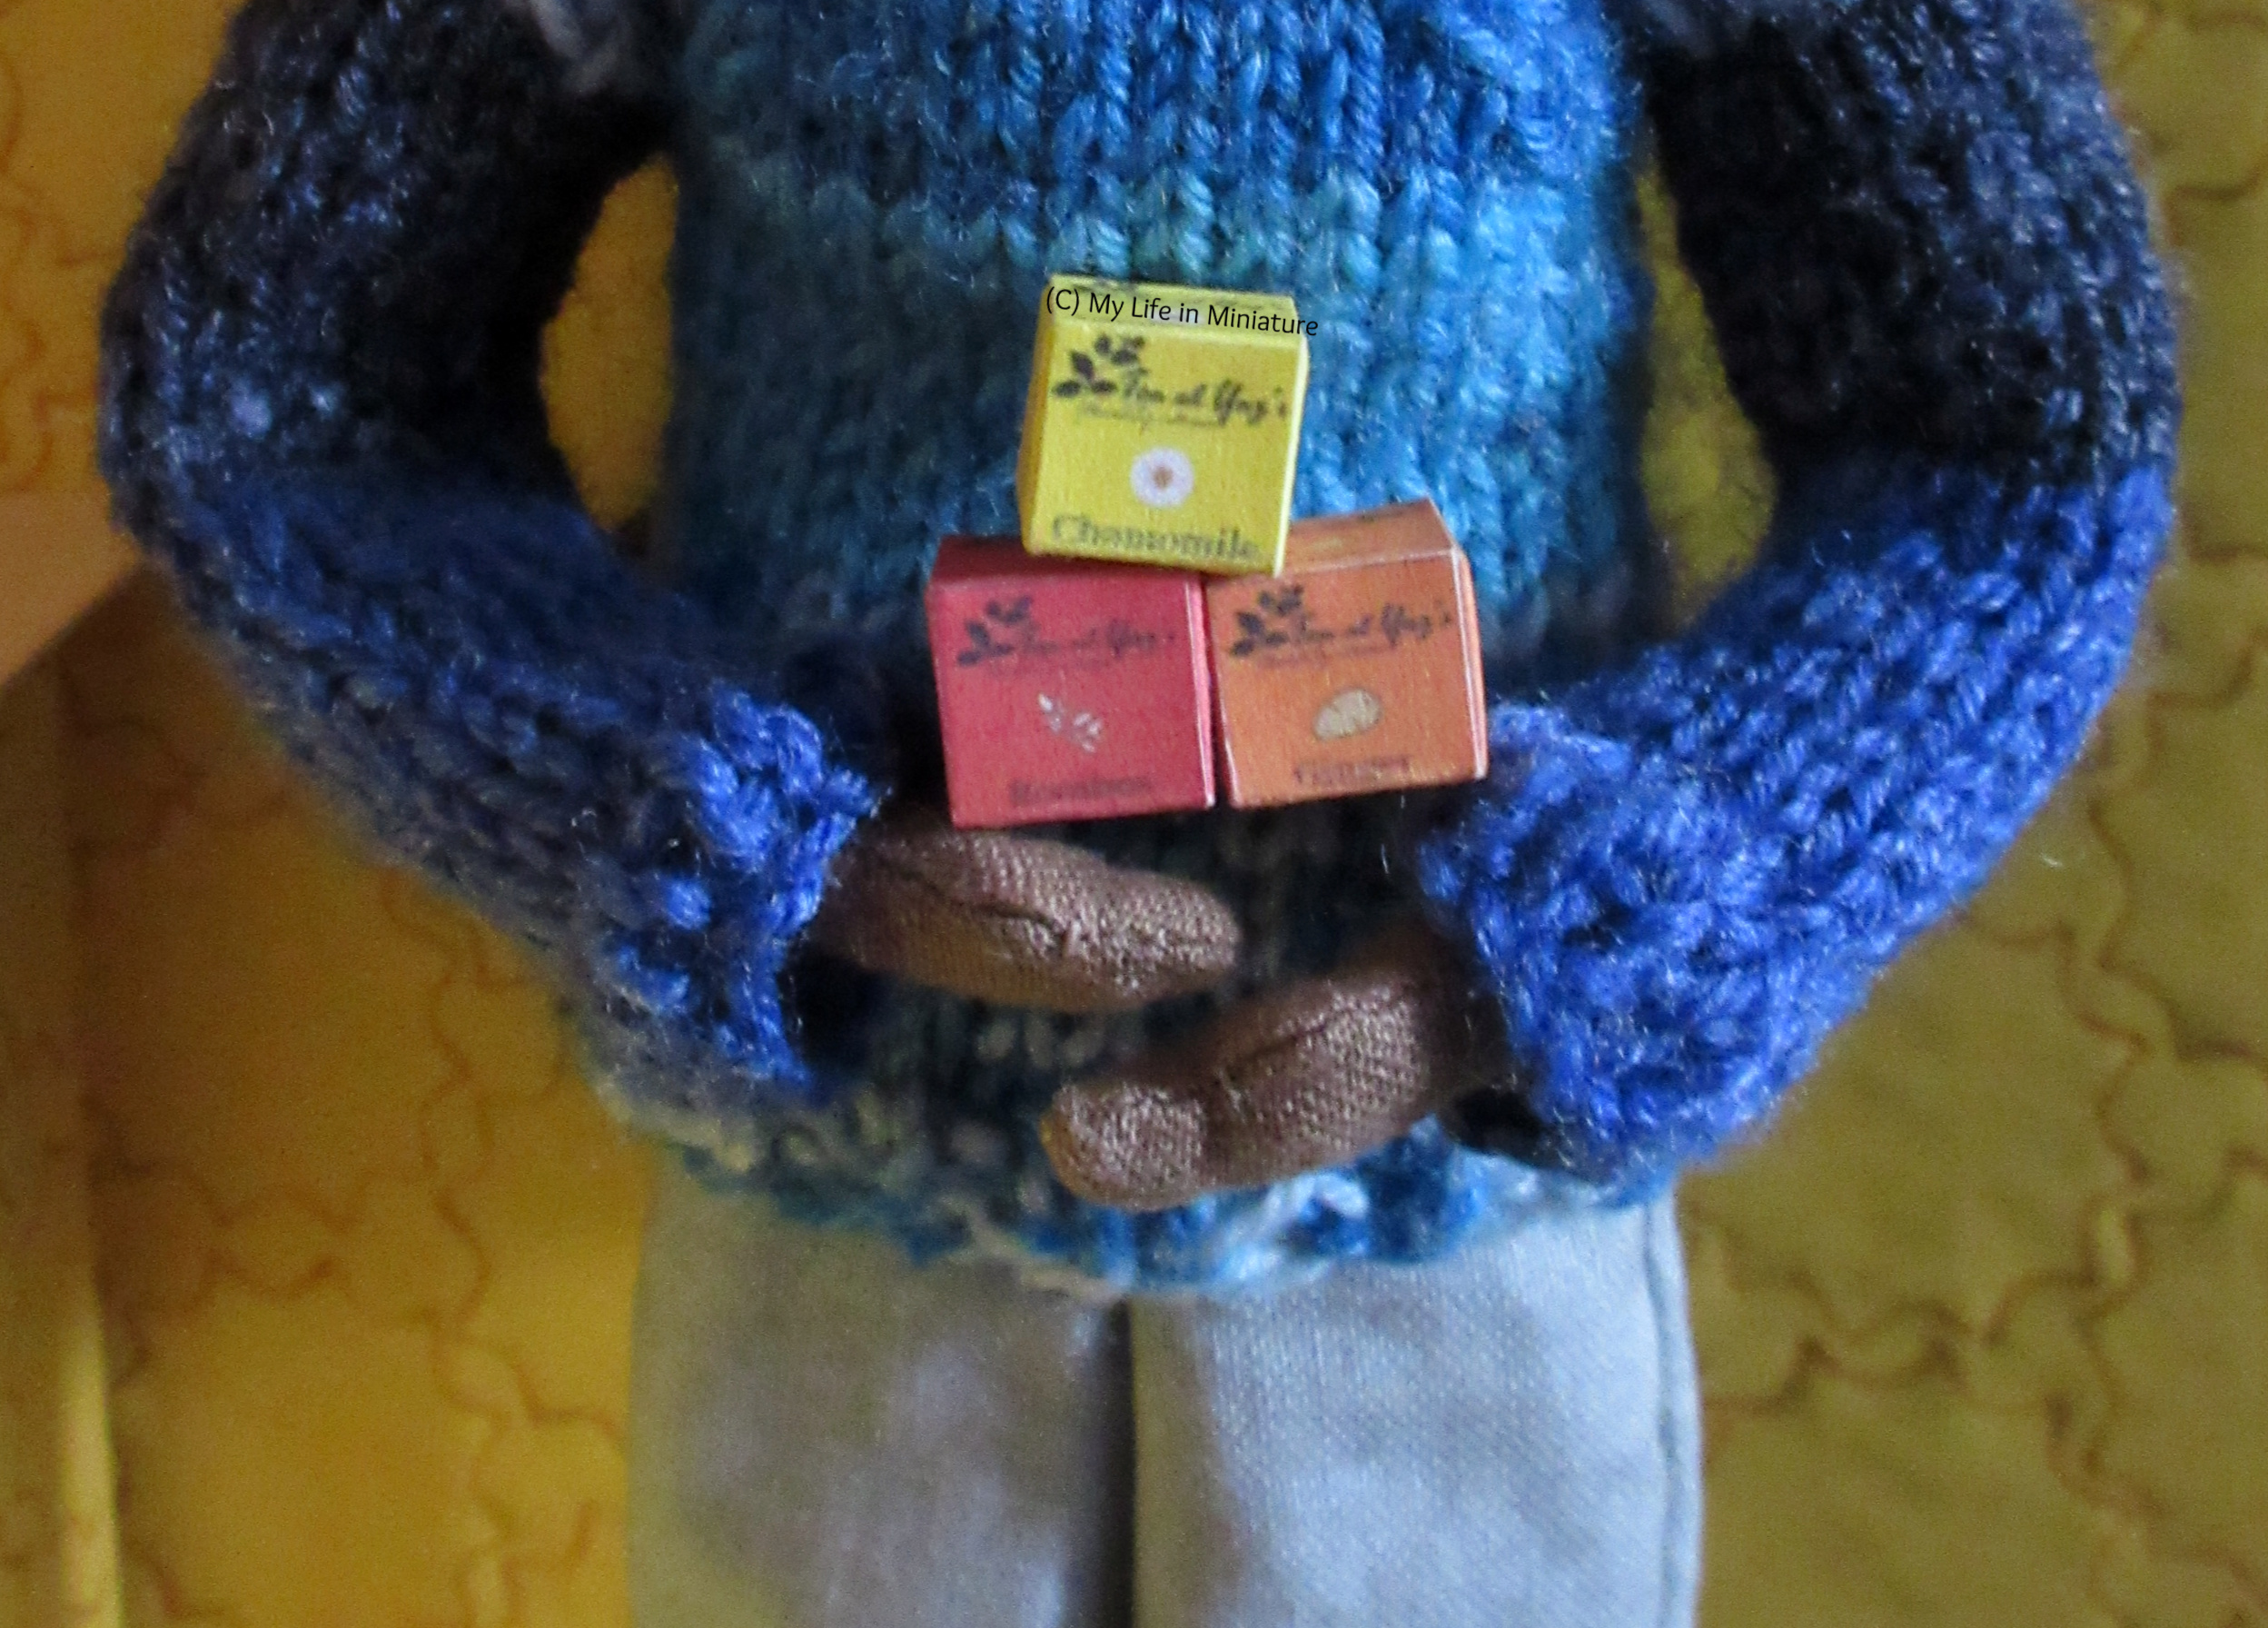 Petra holds three of the boxes in her hands, in front of her blue jumper.